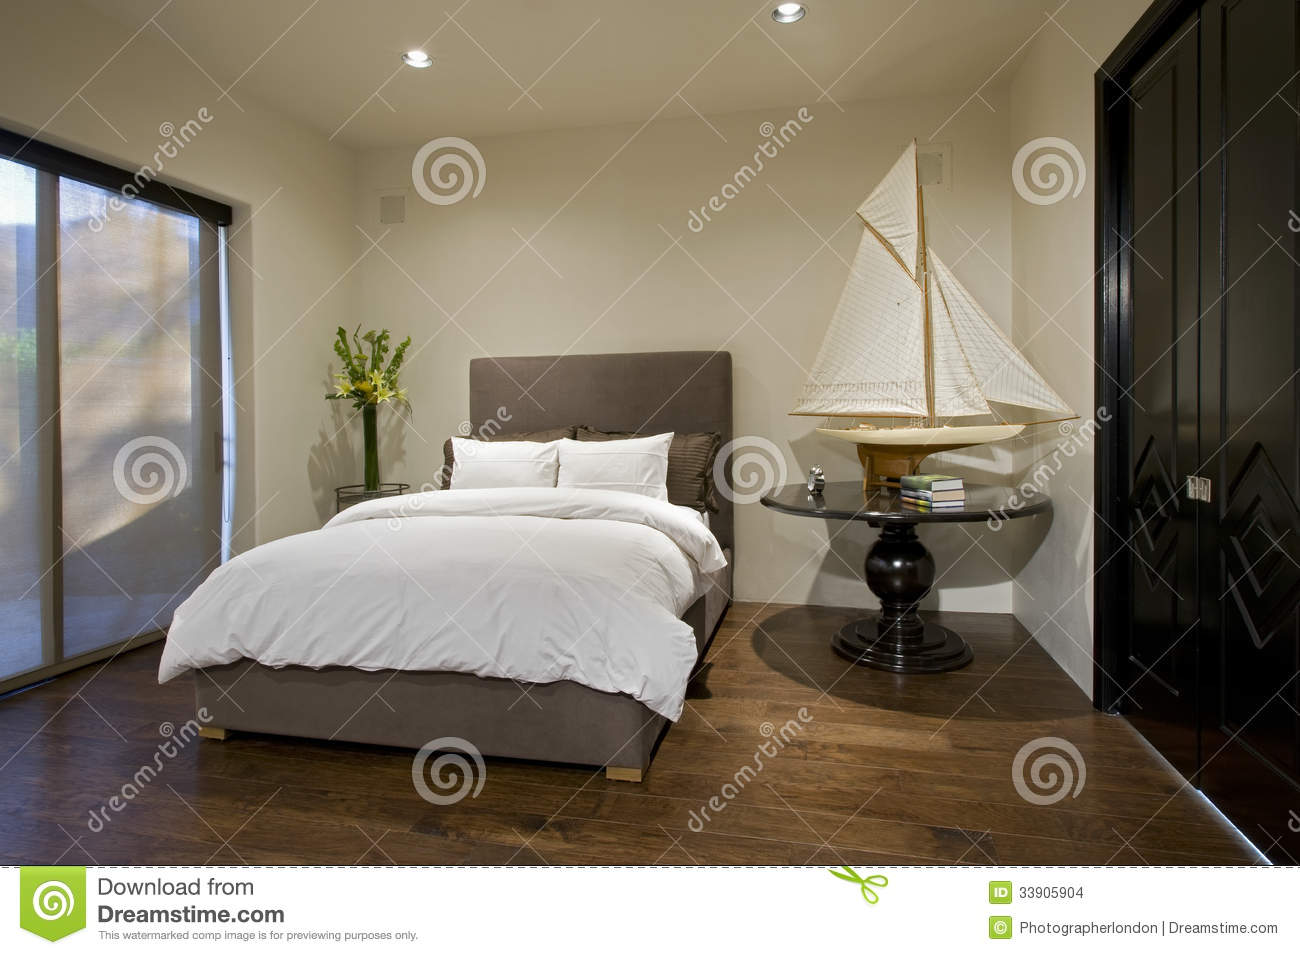 Bedroom With Boat Model On Side Table Stock Images Image